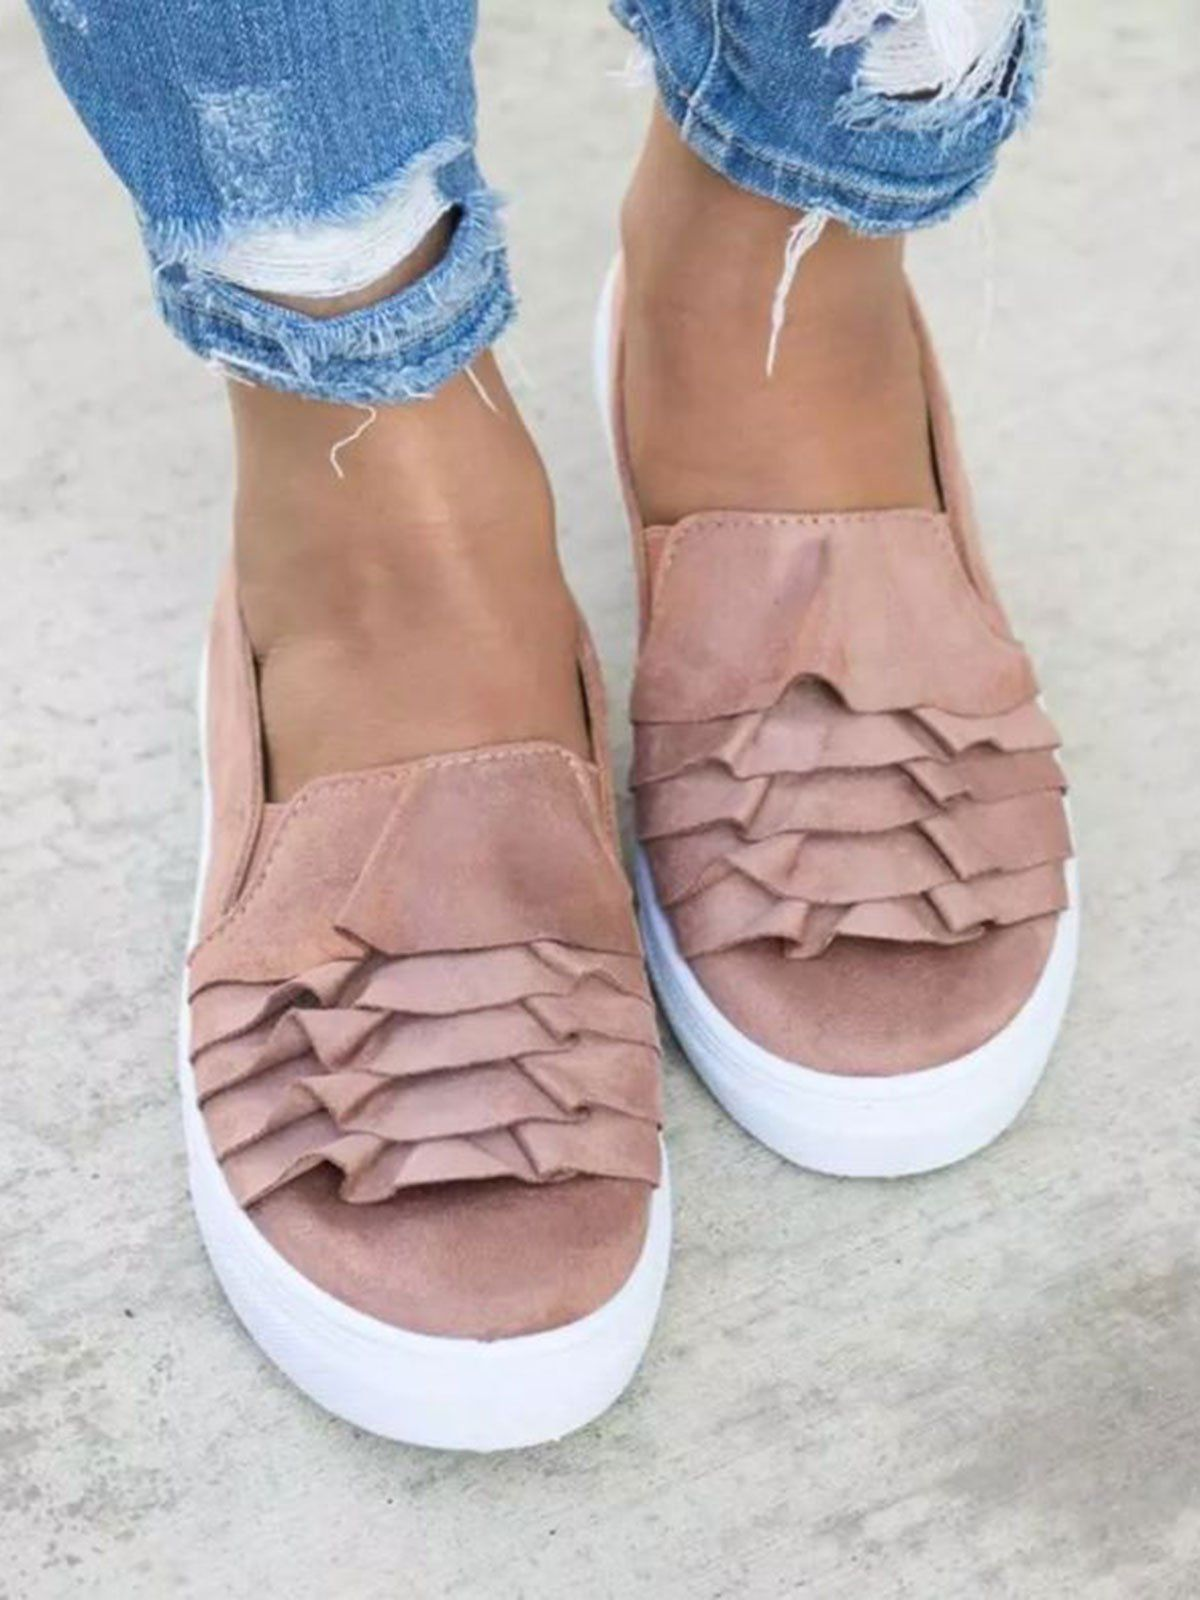 a32bf438a28 Women Plus Size Chunky Heel Booties Daily Zipper Boots. Casual Canvas  Loafers 3D Round Toe Flats Slip On Loafers – luckinbag